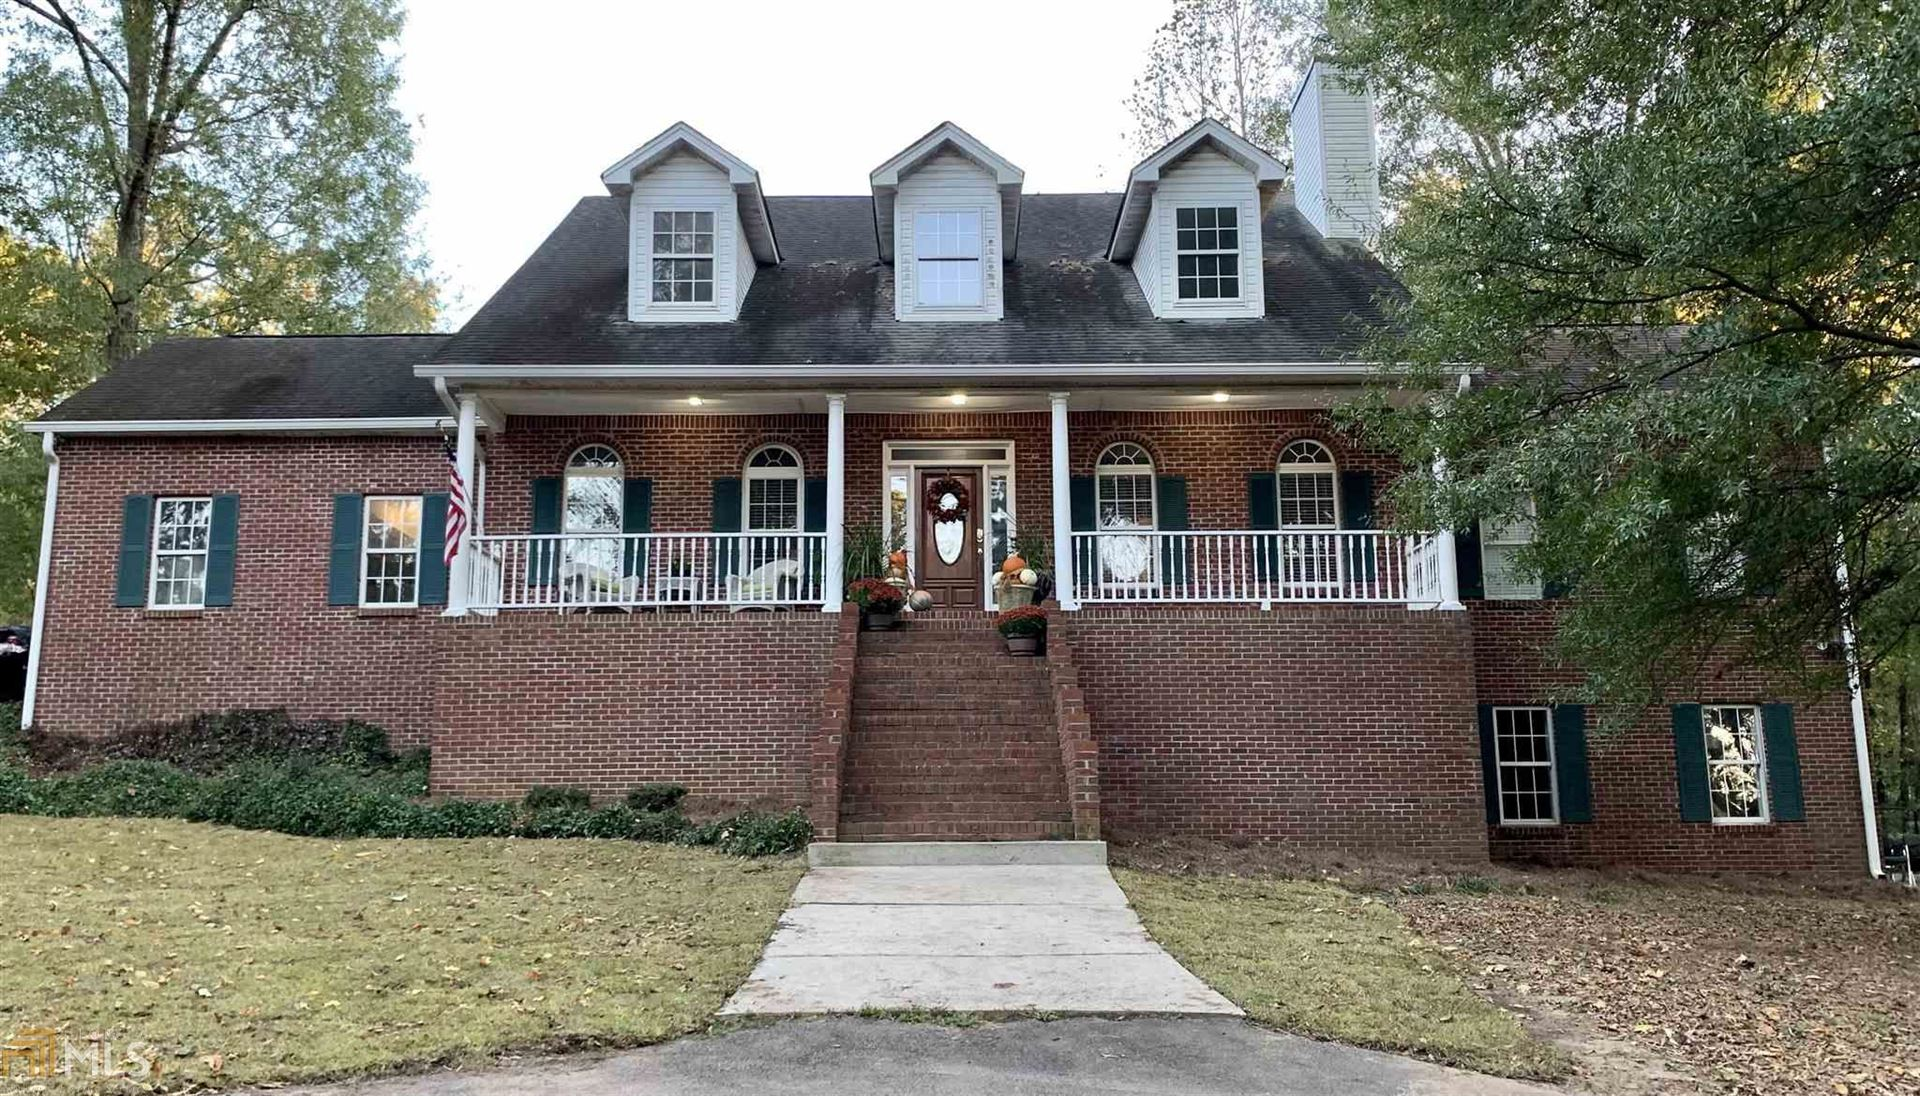 565 Quail Run Rd, Stockbridge, GA 30281 - MLS#: 8882834